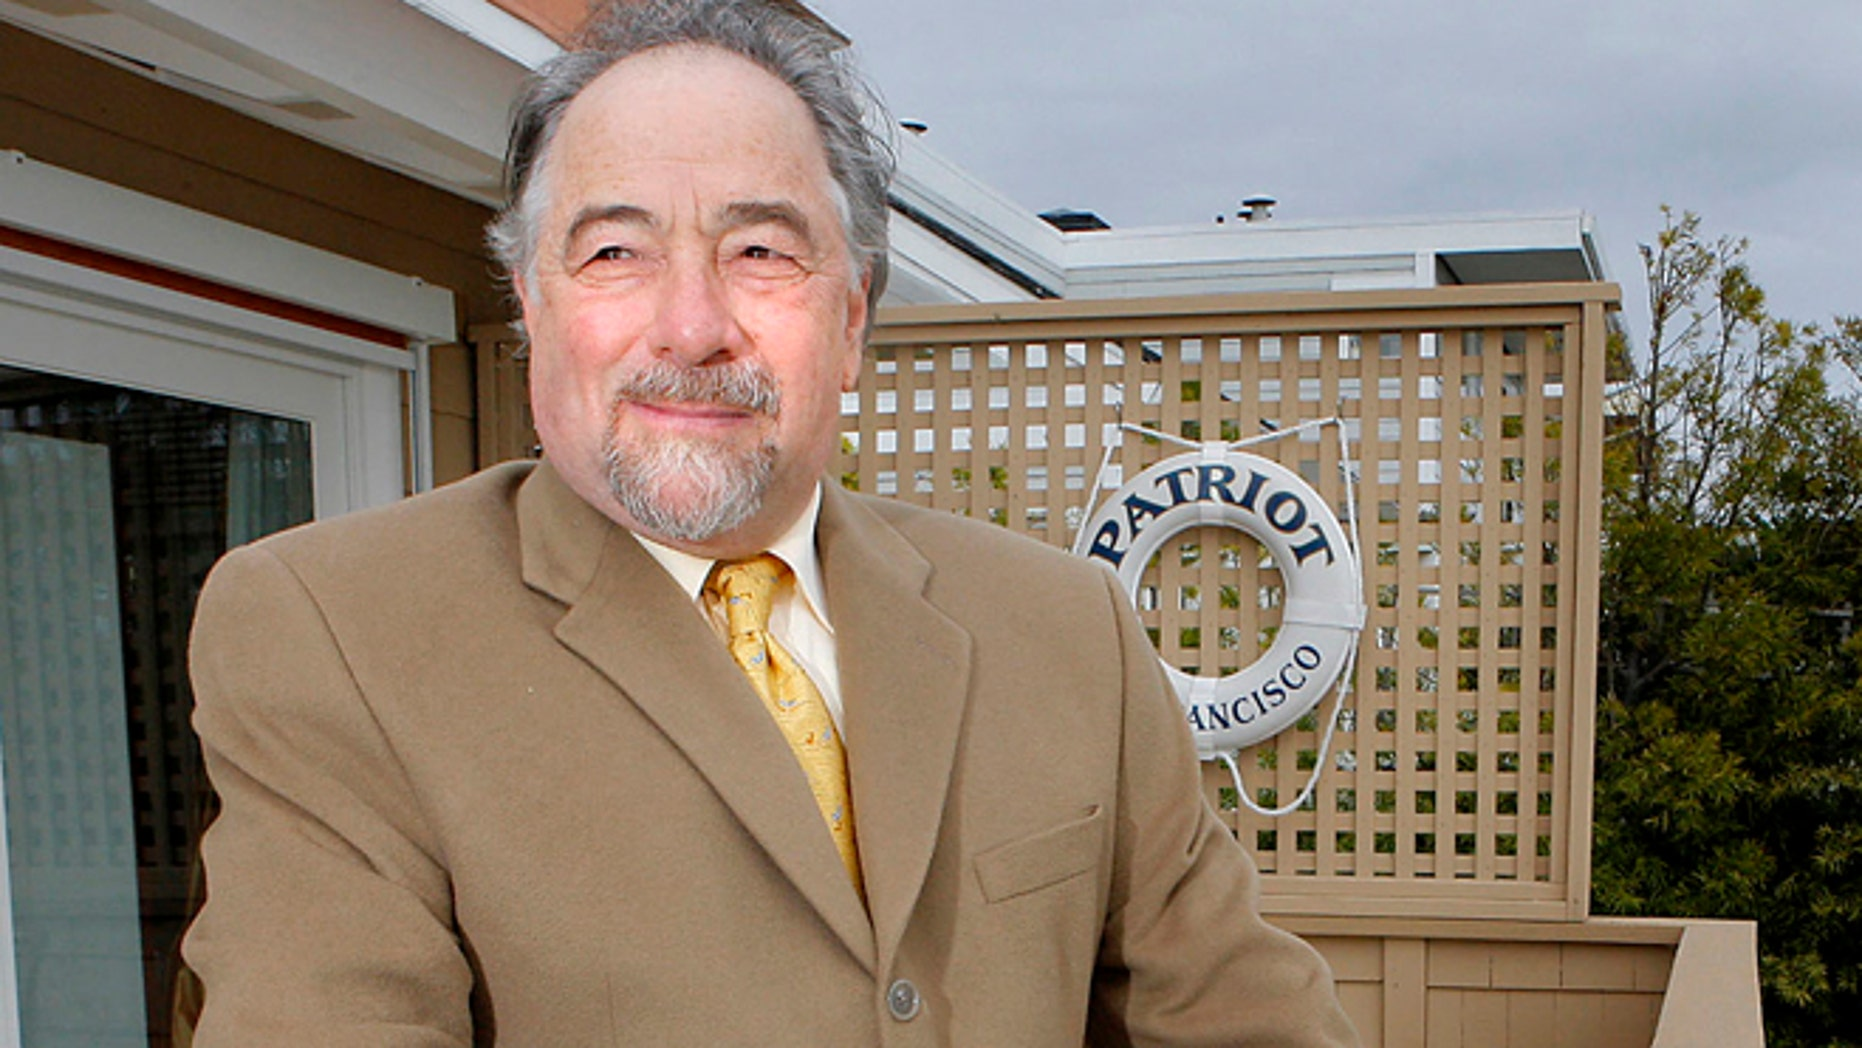 FILE: Michael Savage poses is seen in Tiburon, Calif.